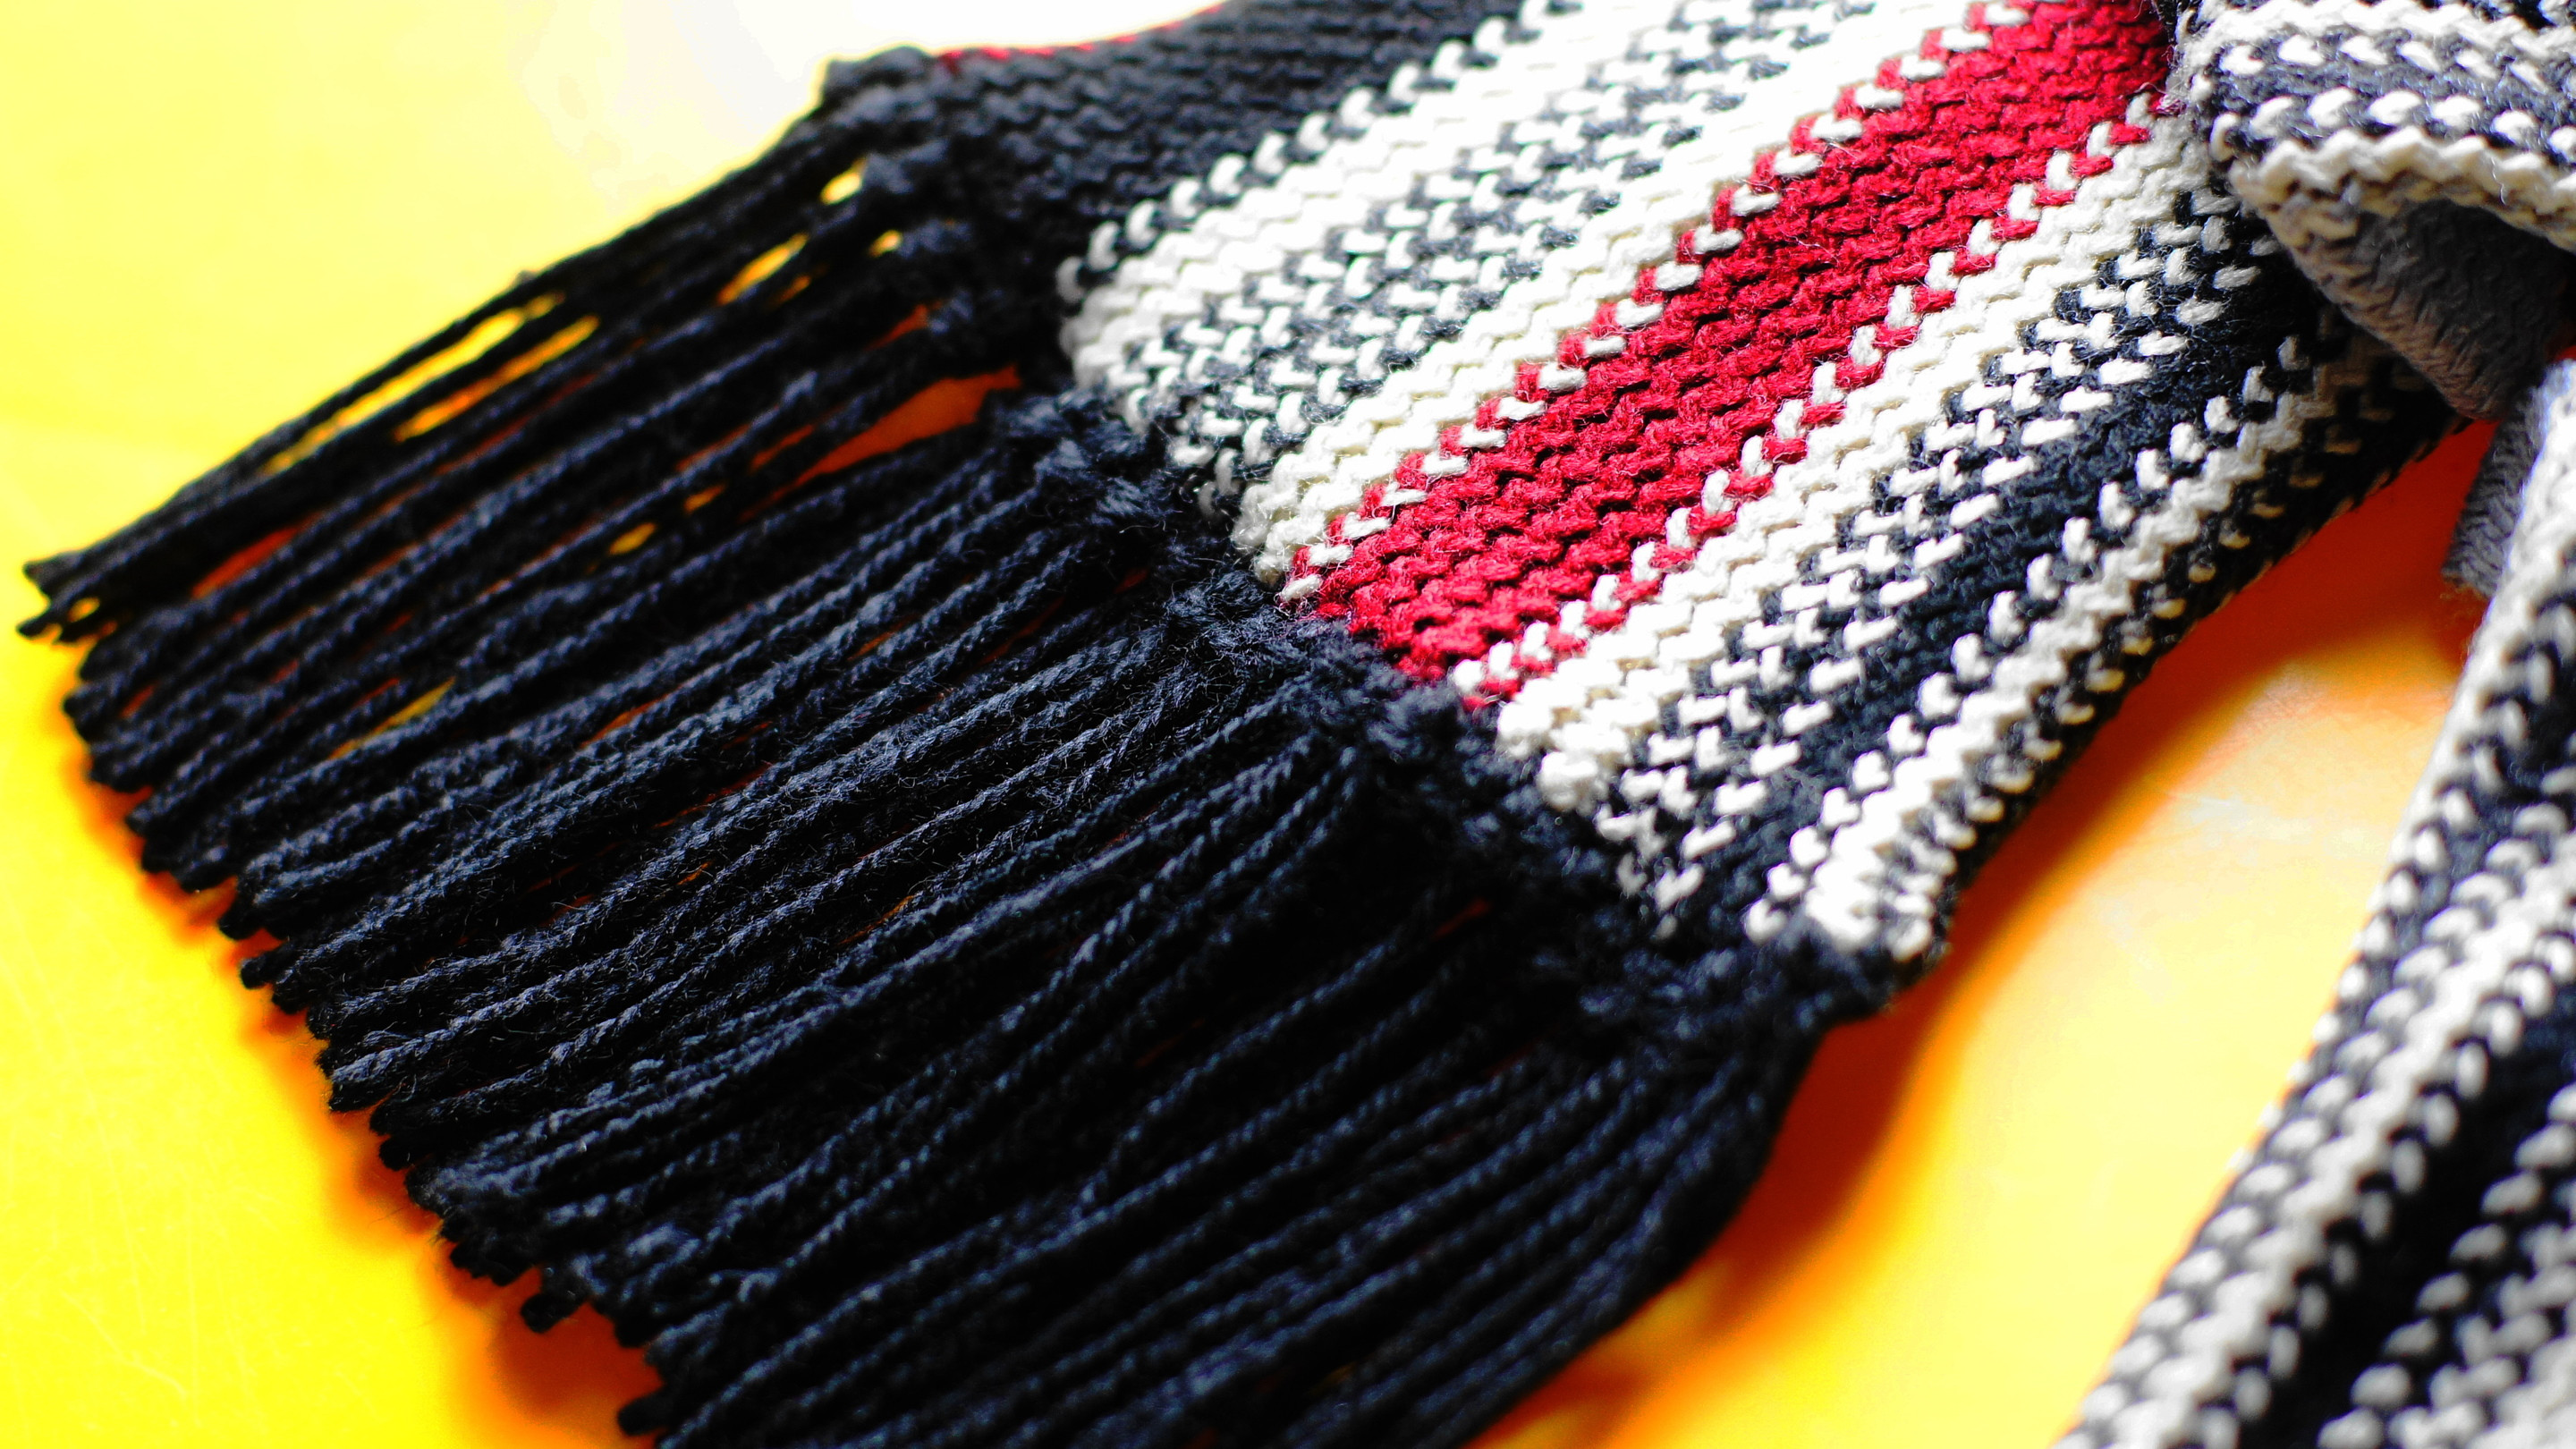 Crochet or Knit Inspirational How to Add Fringe to A Crochet or Knit Project 13 Steps Of Superb 42 Pics Crochet or Knit